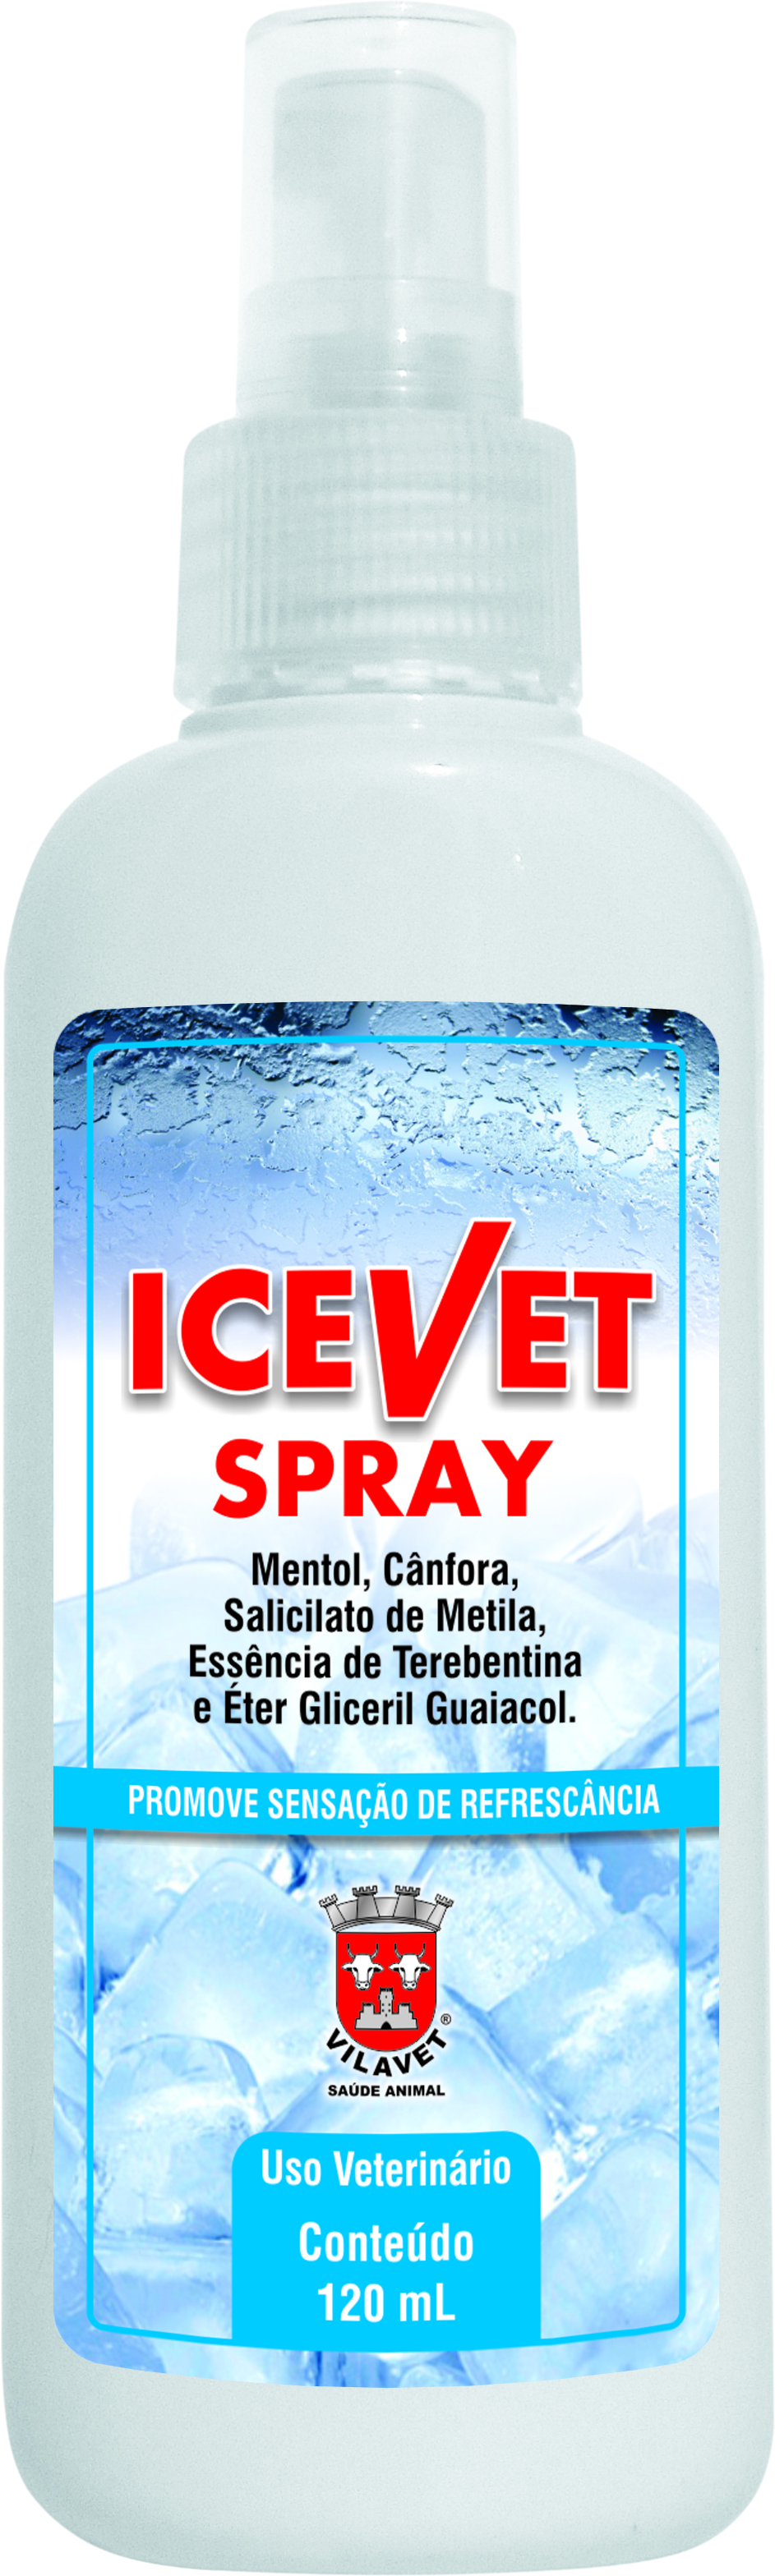 icevet-spray-120-ml